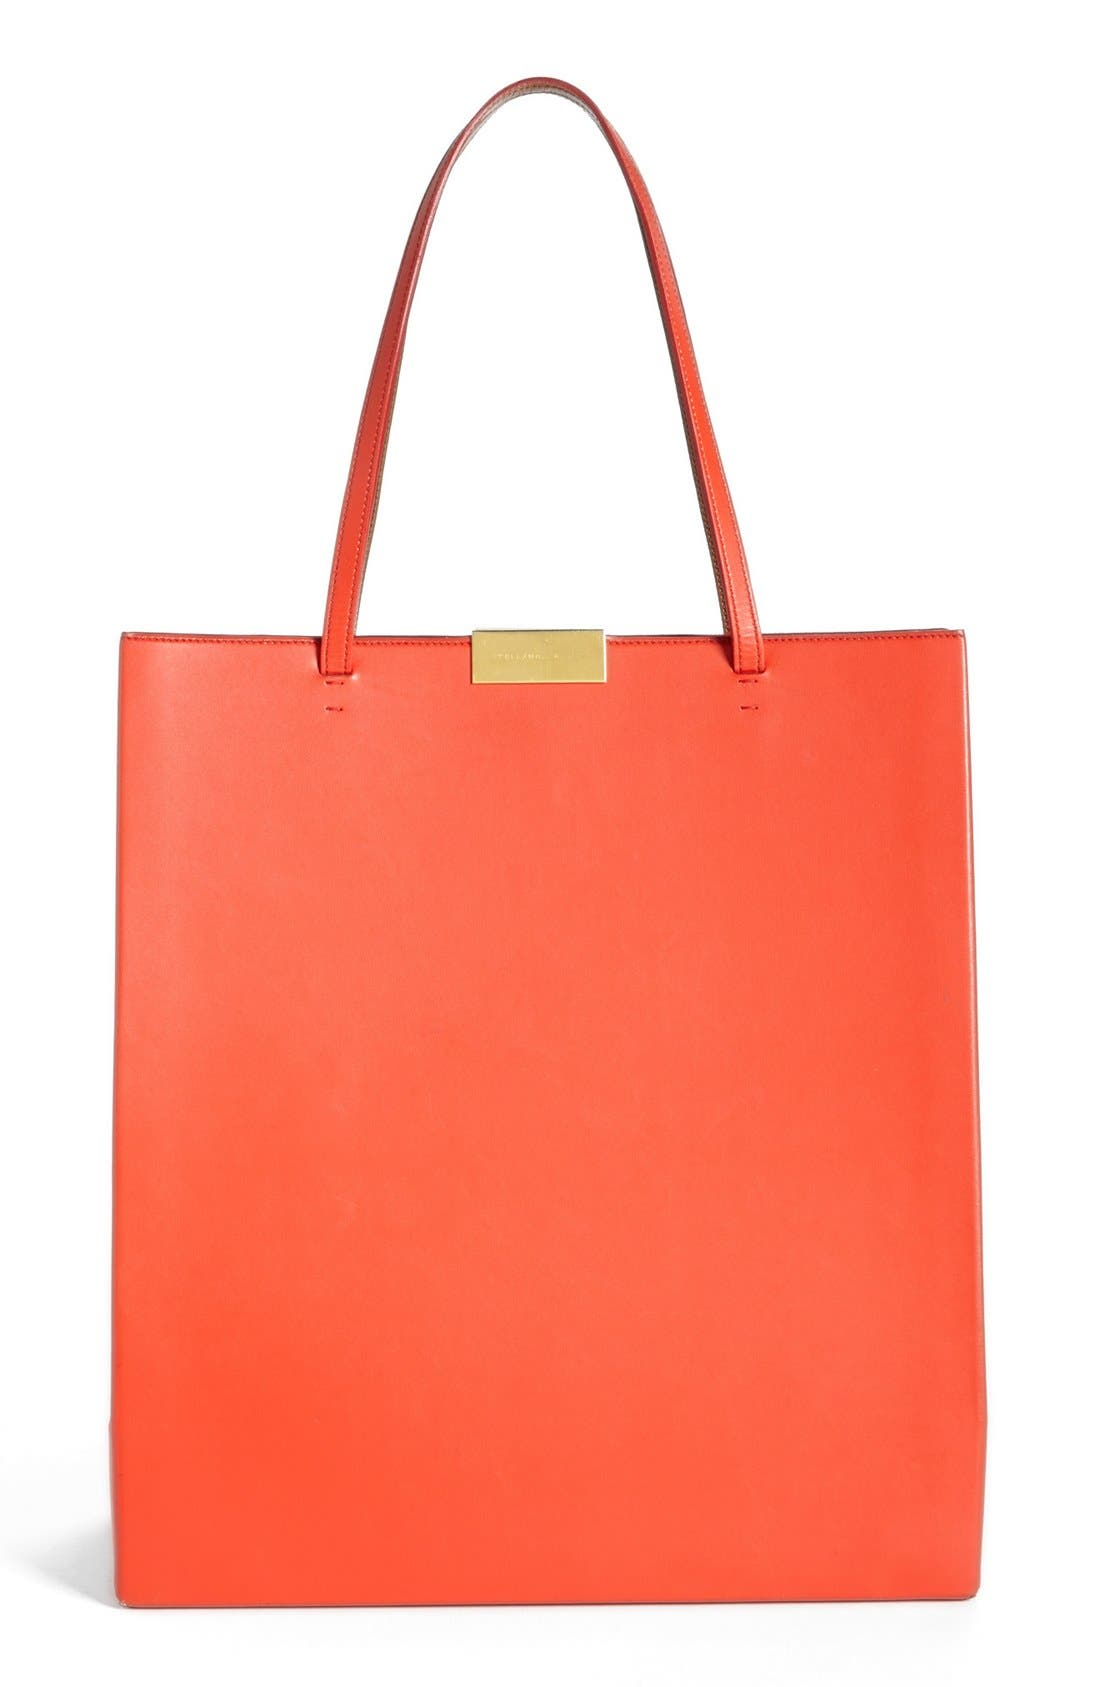 Alternate Image 1 Selected - Stella McCartney 'Eco' Tote